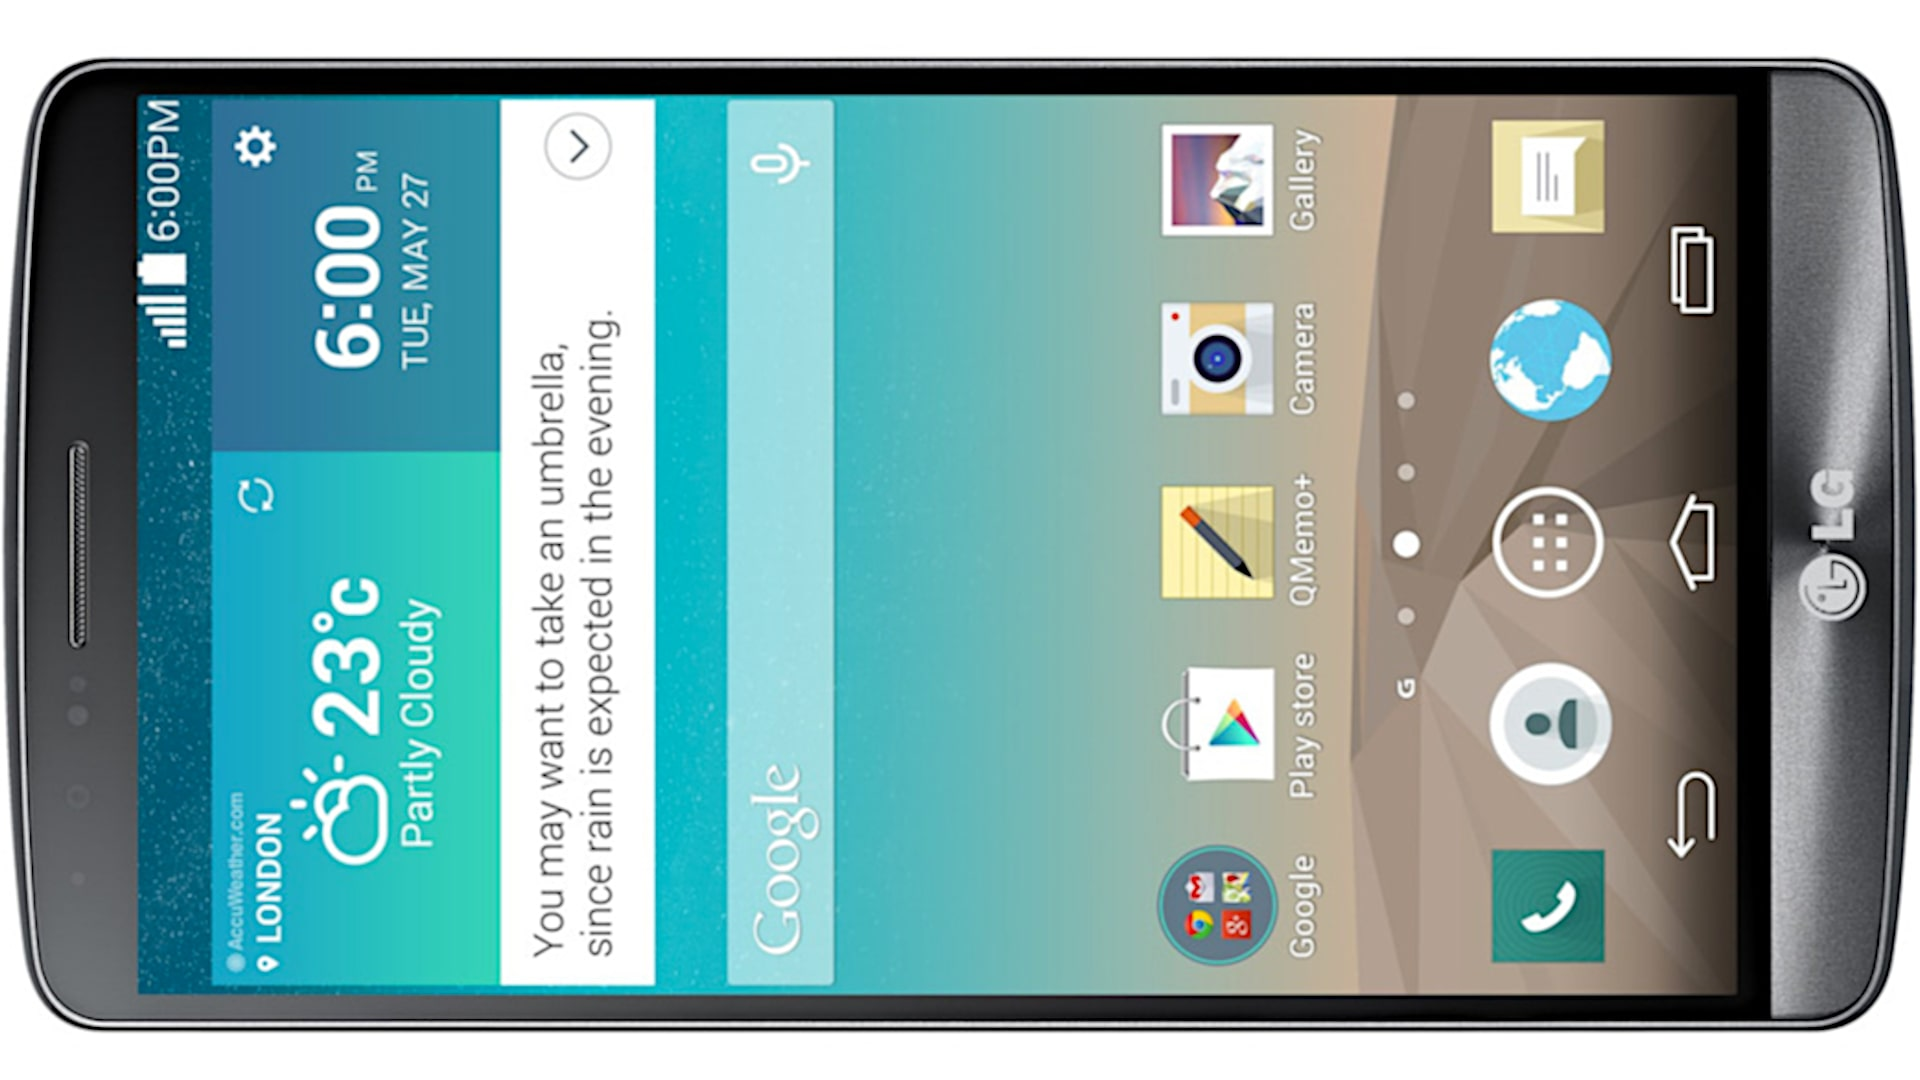 LG G3 Screen Review